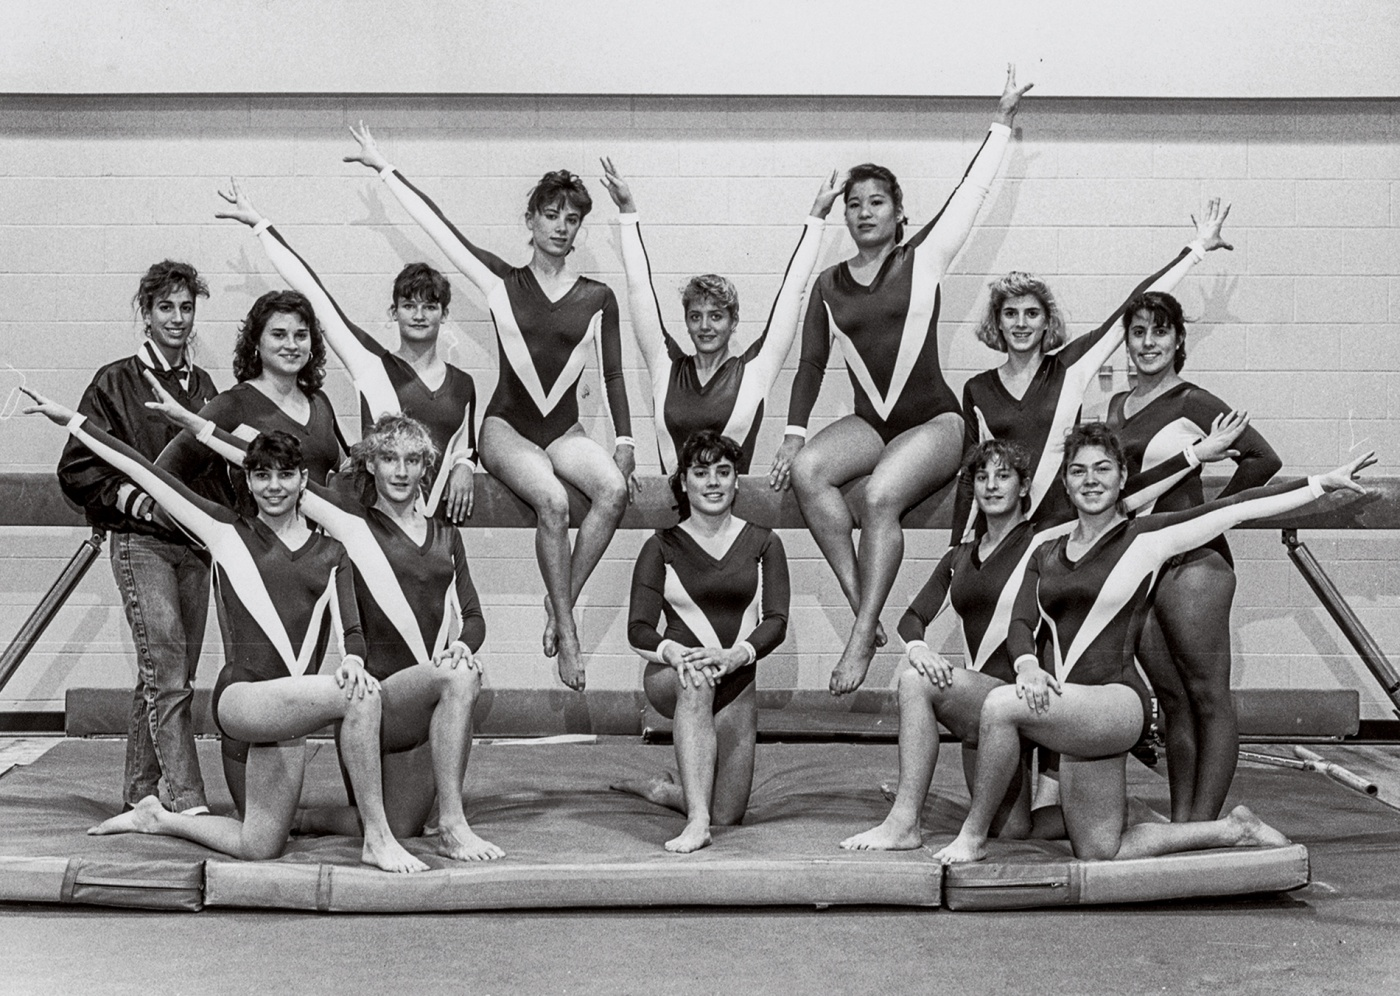 Women's Gymnastics team 89-90